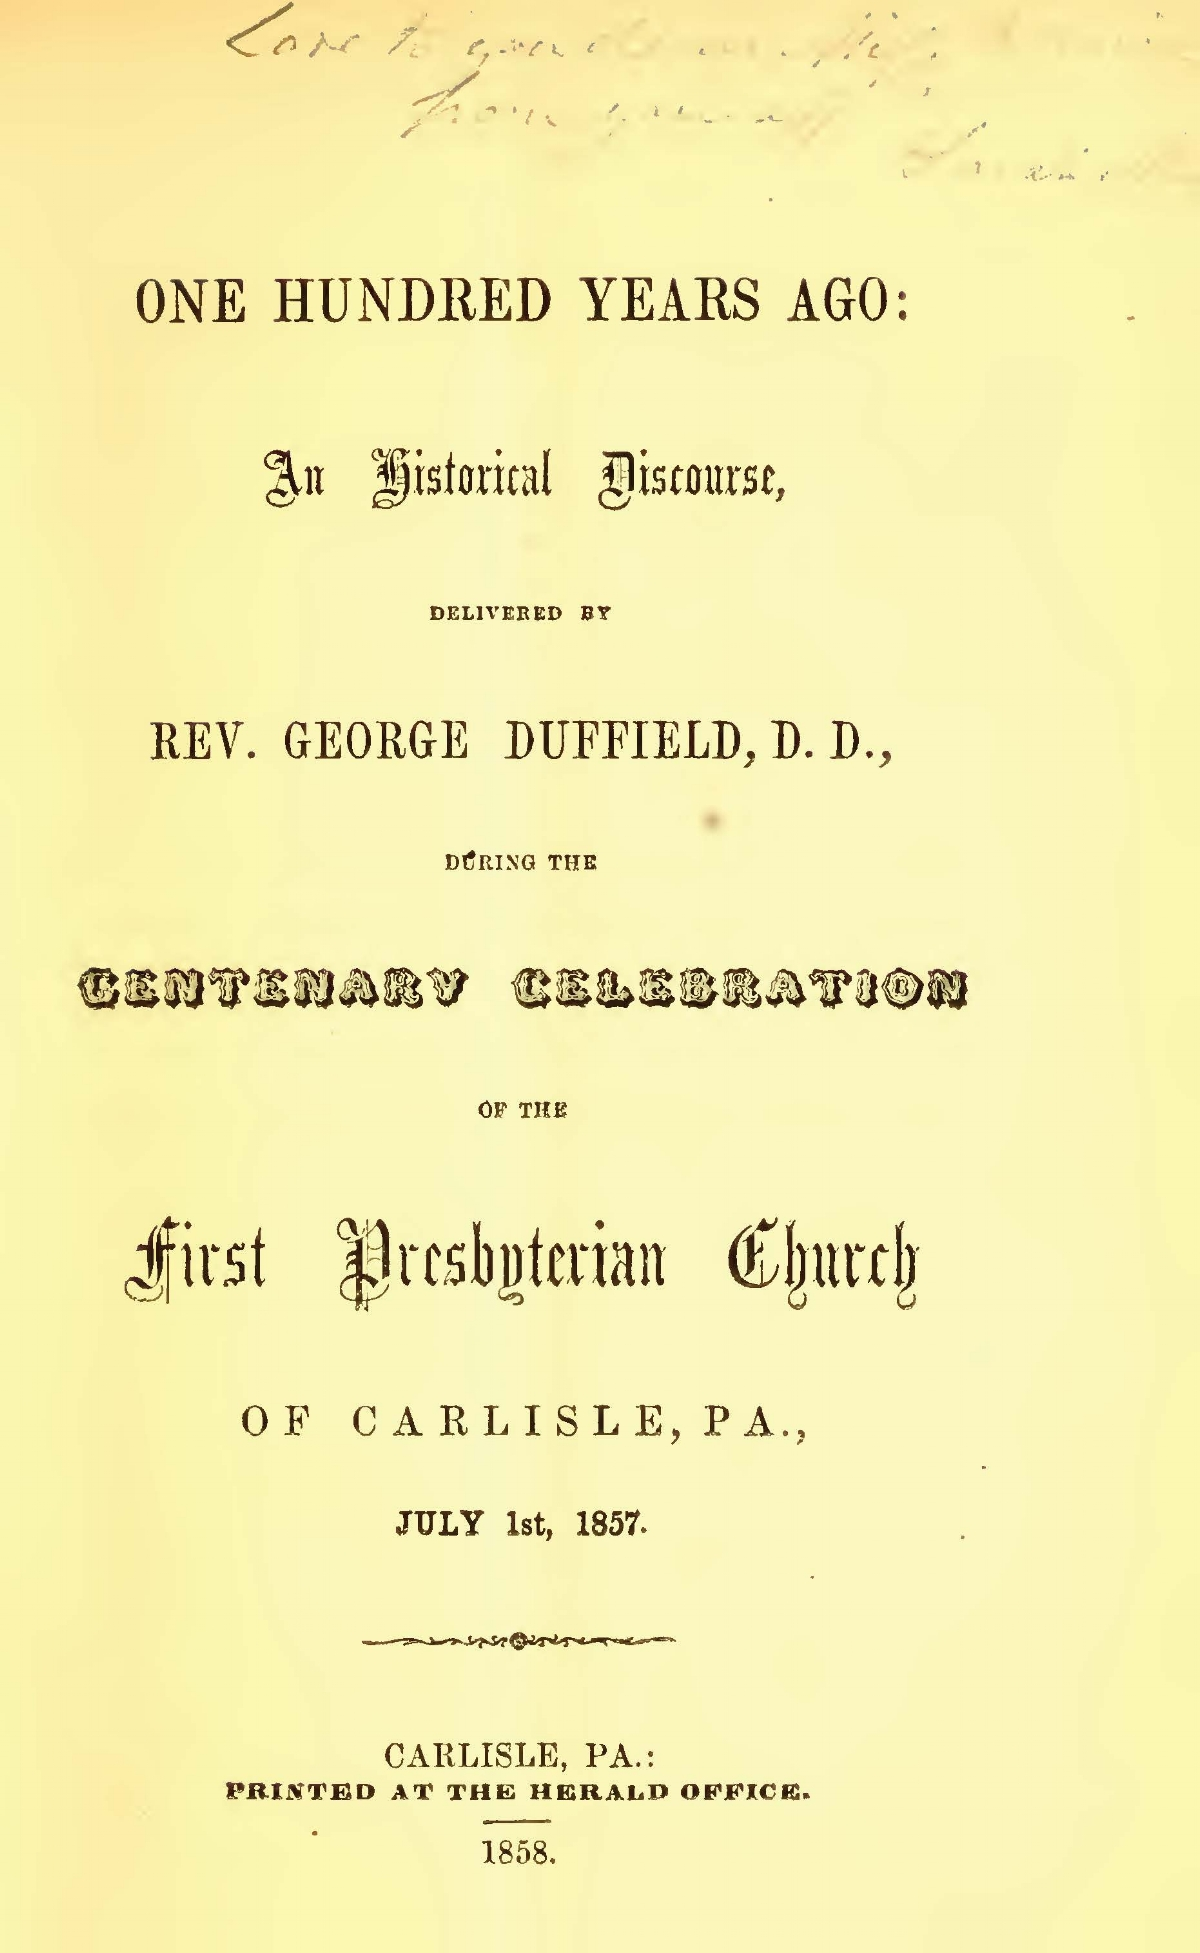 Duffield, IV, George, One Hundred Years Ago An Historical Discourse Title Page.jpg